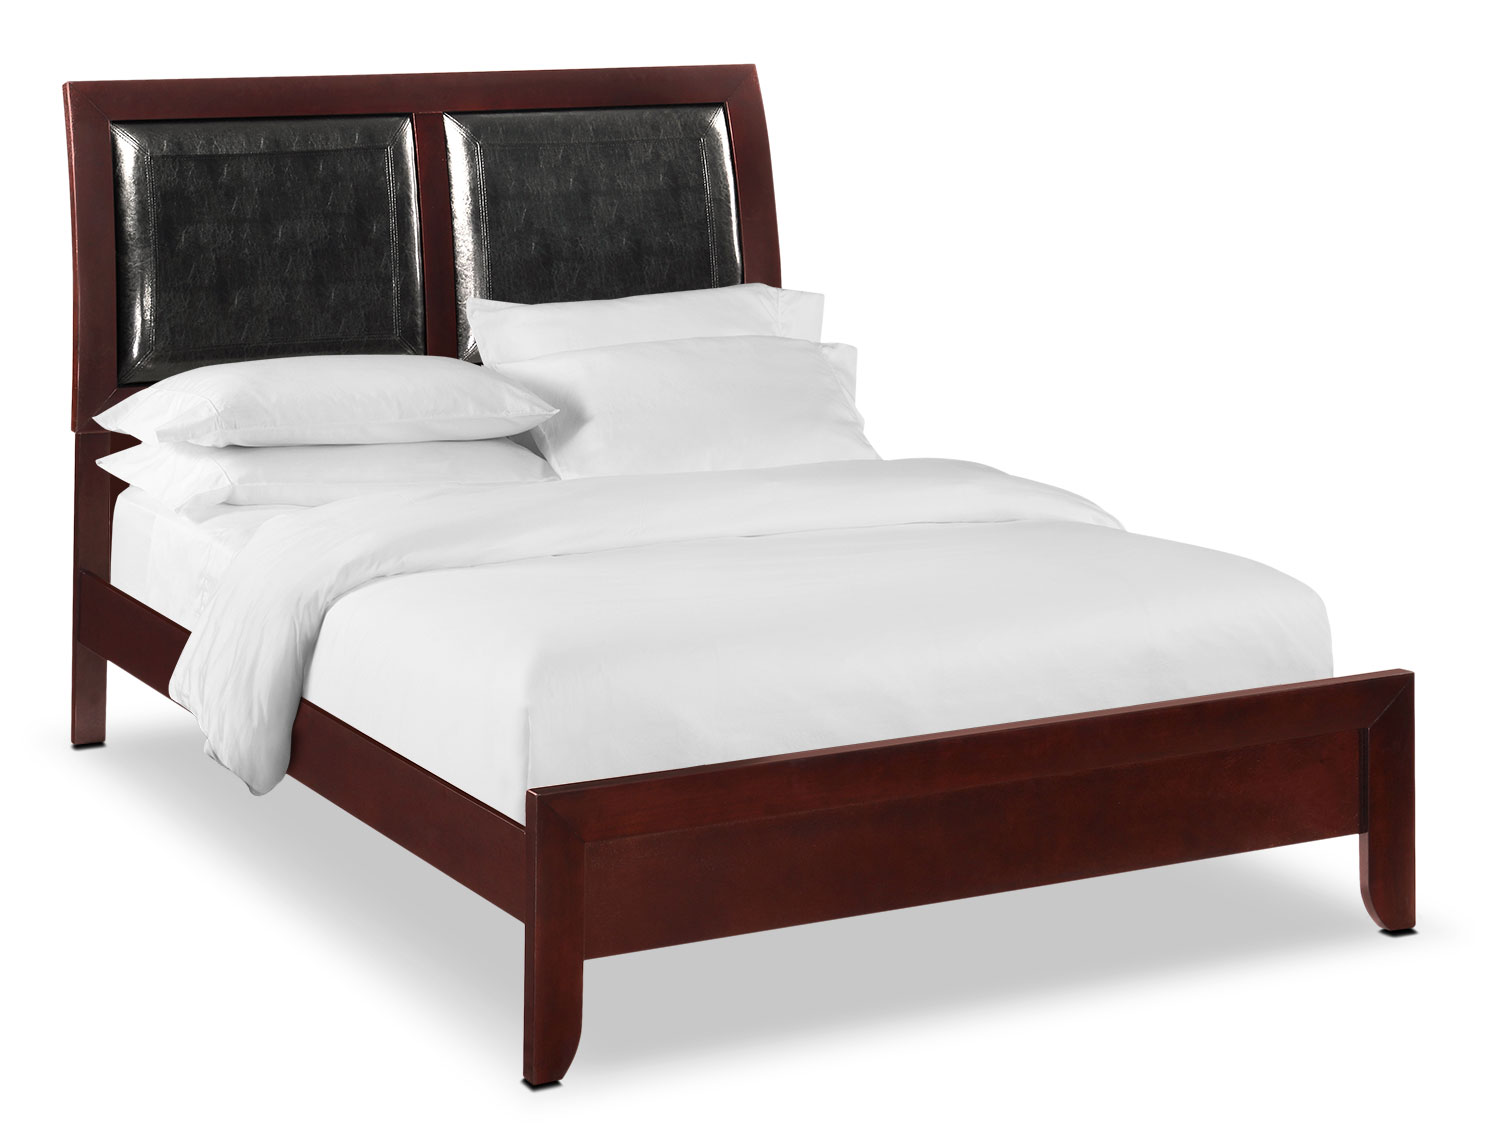 Braden King Upholstered Bed - Merlot